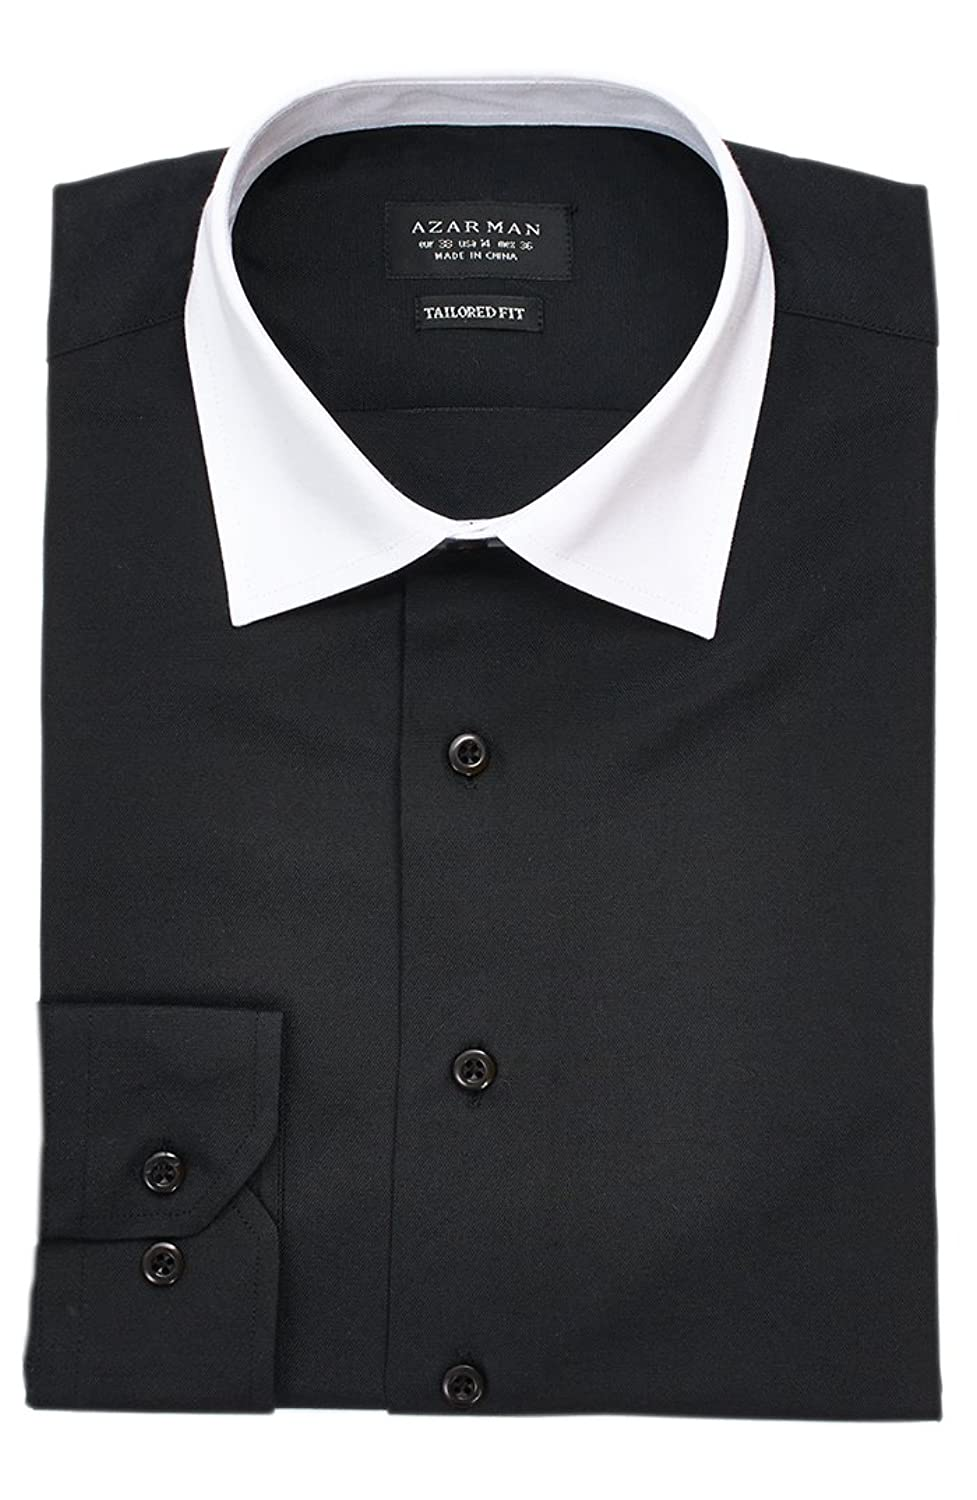 Black Dress Shirt White Collar Cocktail Dresses 2016